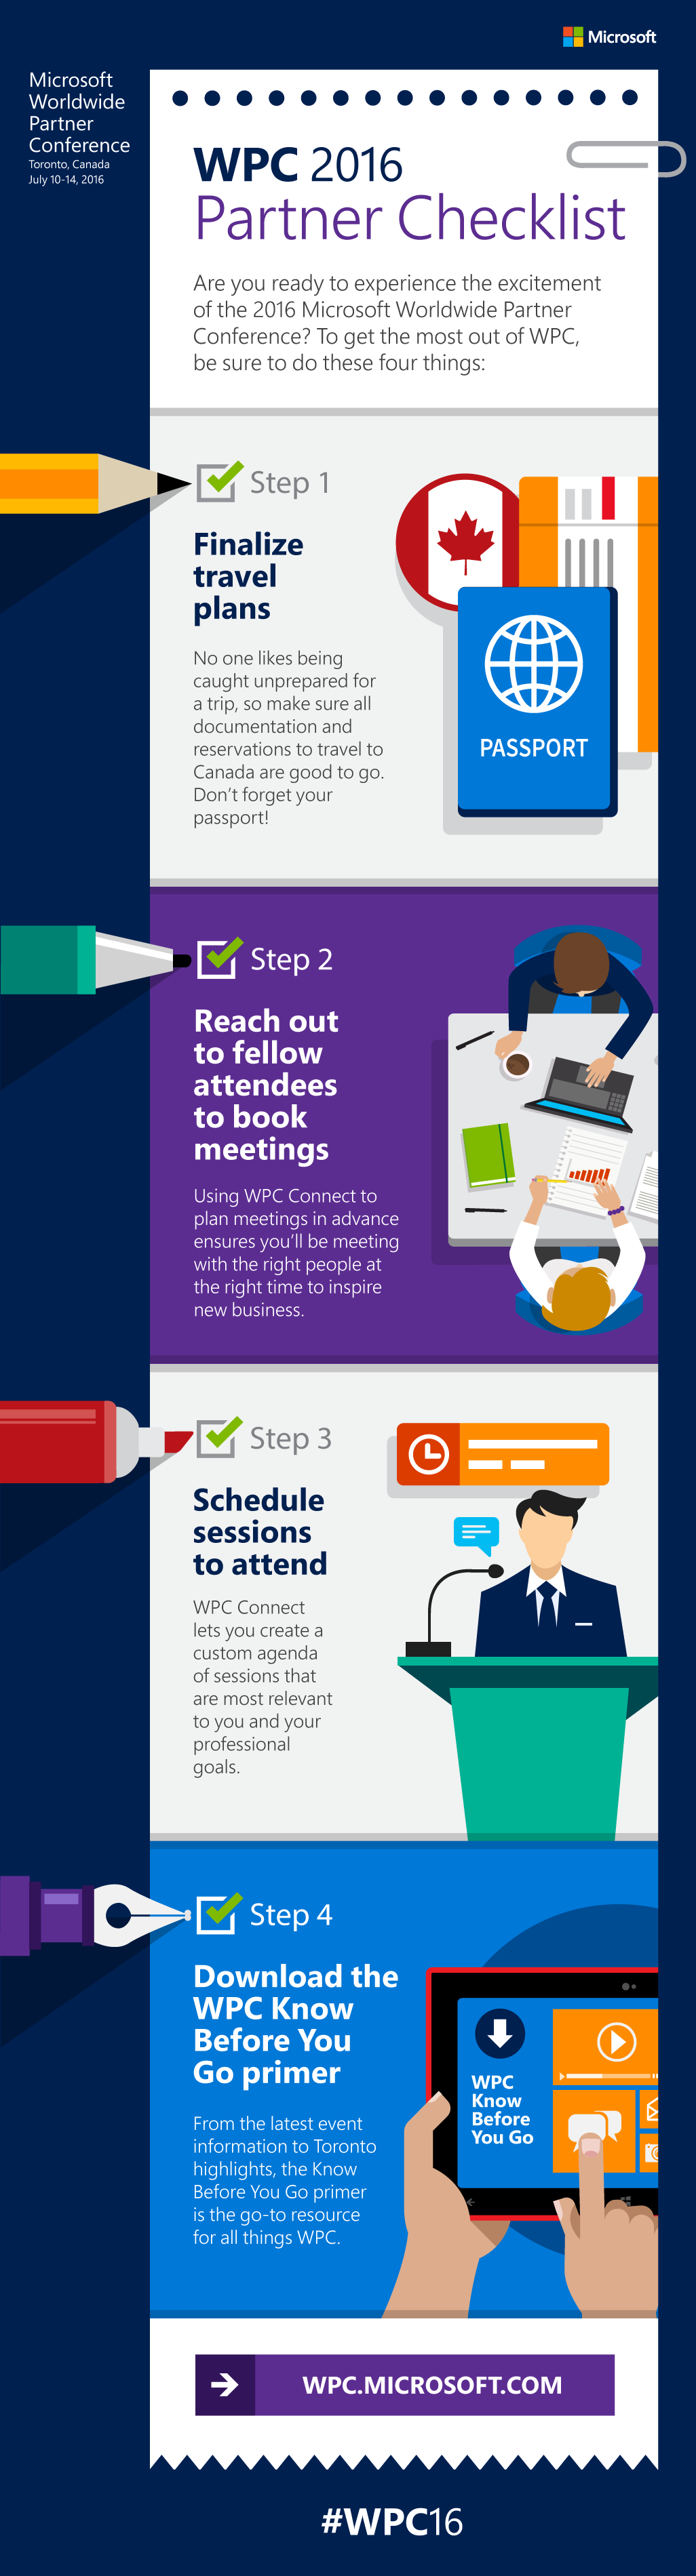 Infographic - What you need to know to get ready for WPC 2016